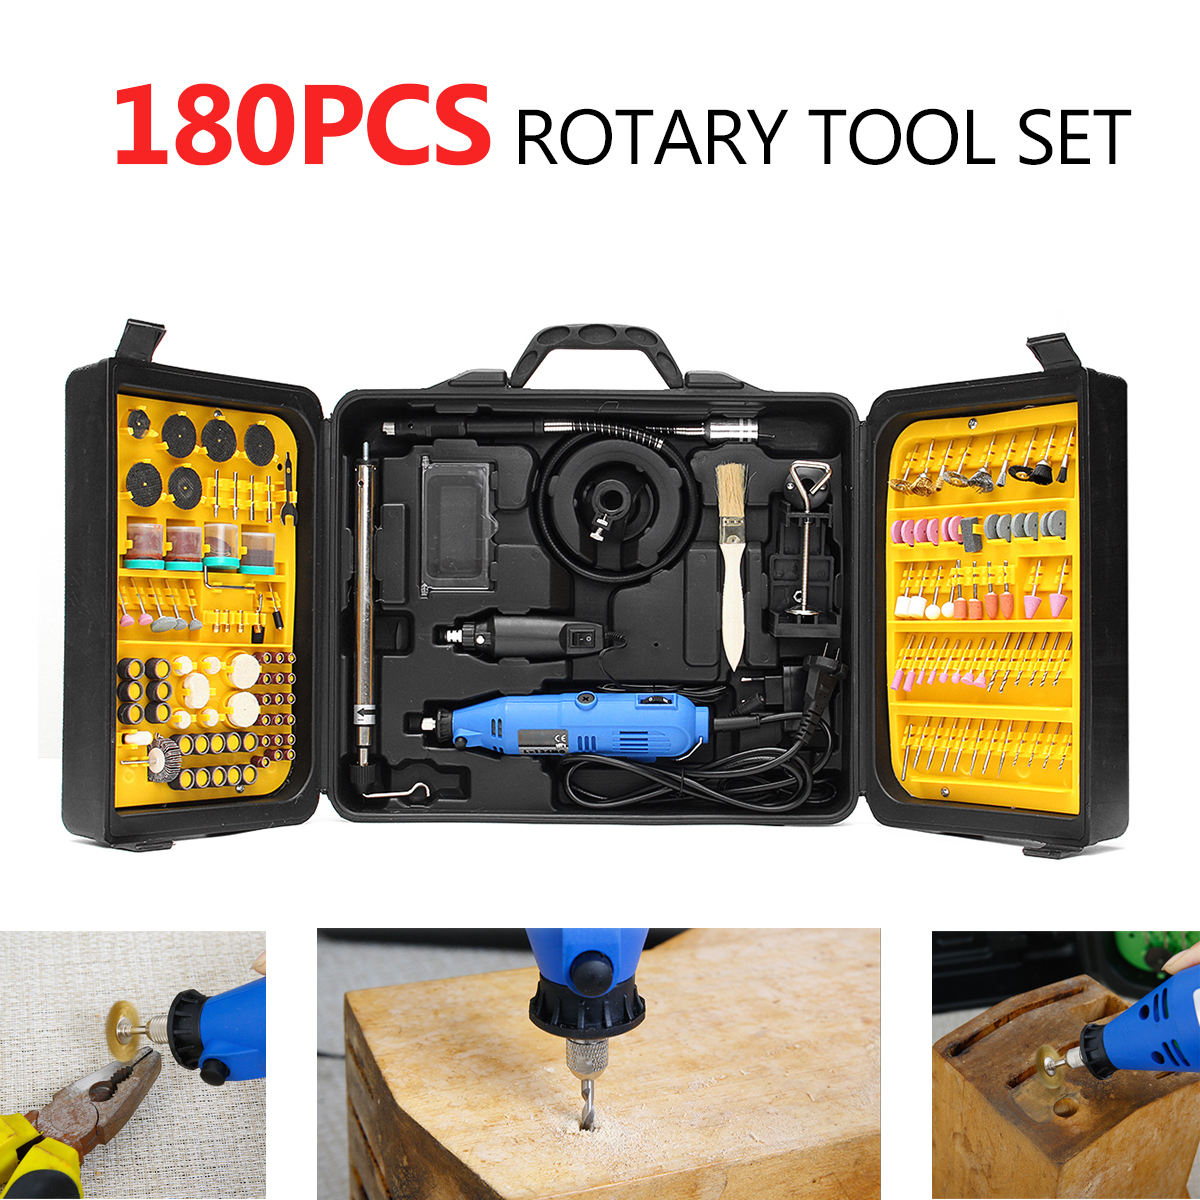 Rechargeable 180Pcs Rotary Power Tool Set Electric Drill Grinder Engraver Sander Polisher Craving DIY Power Tools Accessorie